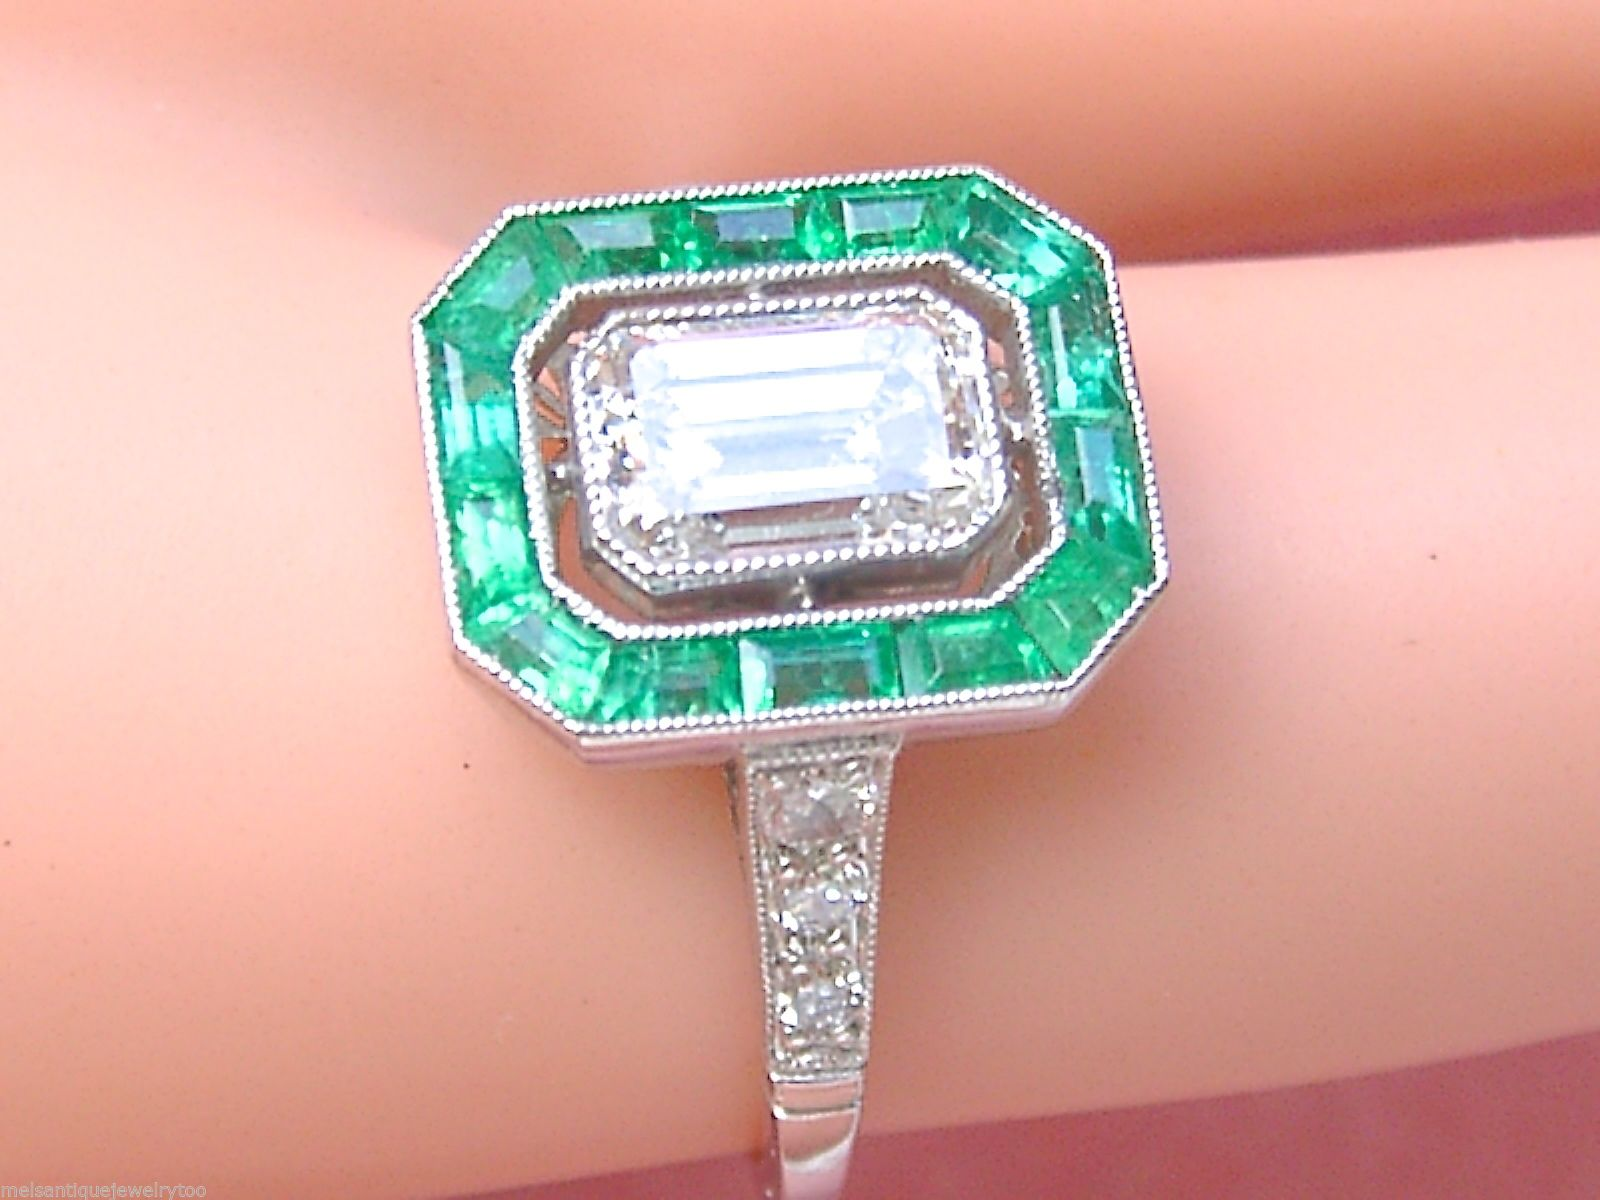 ring cocktail retro garnet cut diamond estate pin antique timeless emerald jewelry